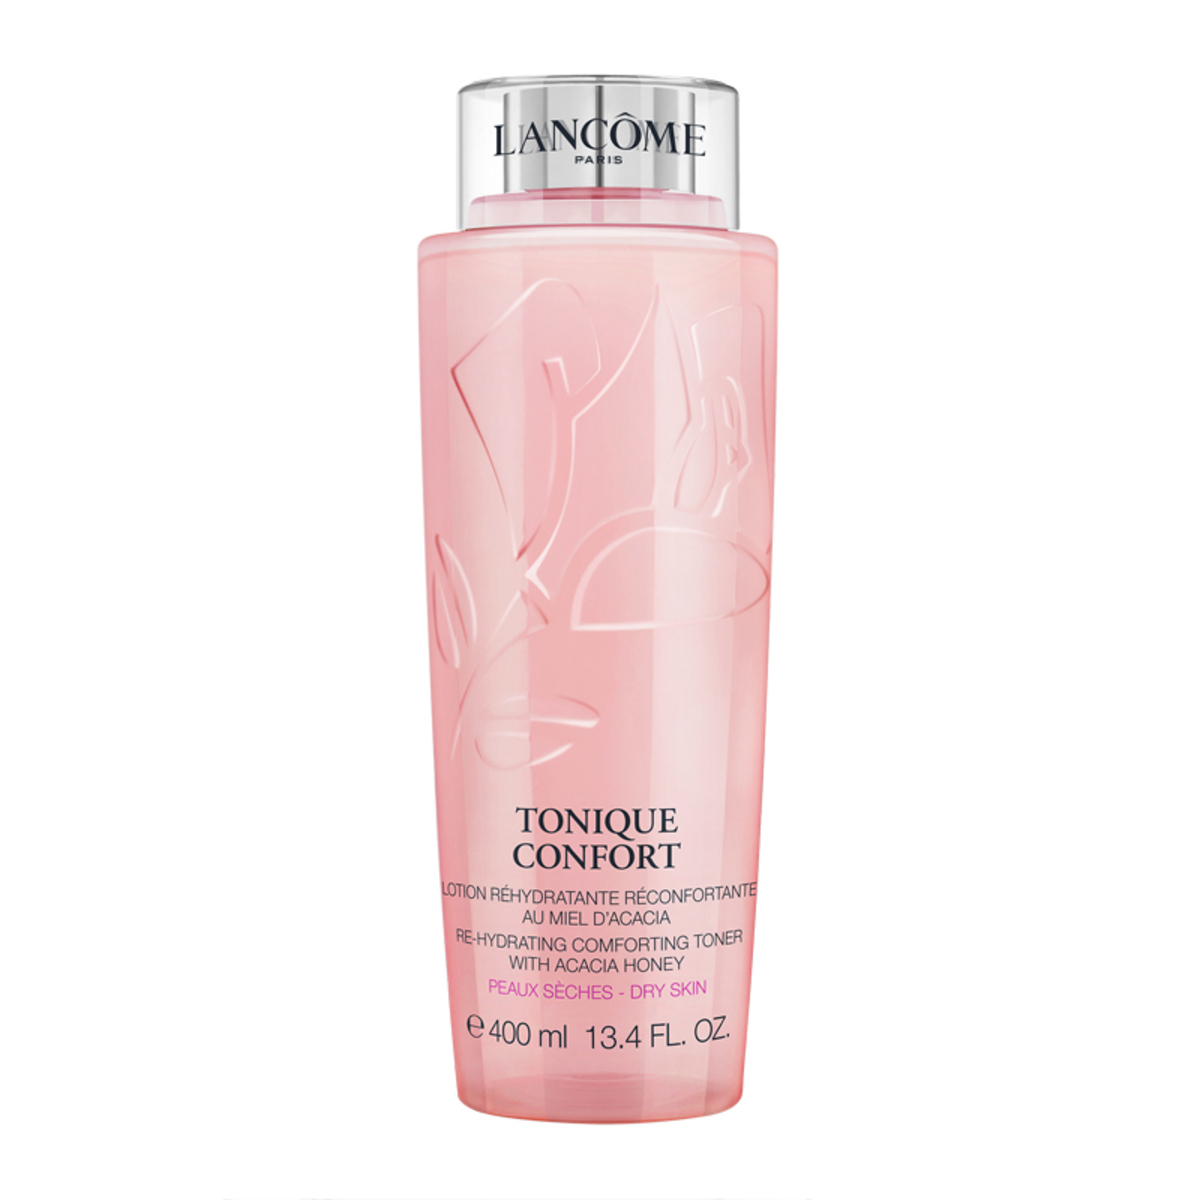 (Exp: 2021.10) - Tonique Confort Re-Hydrating Comforting Toner Dry Skin 400ml - [Parallel Import]